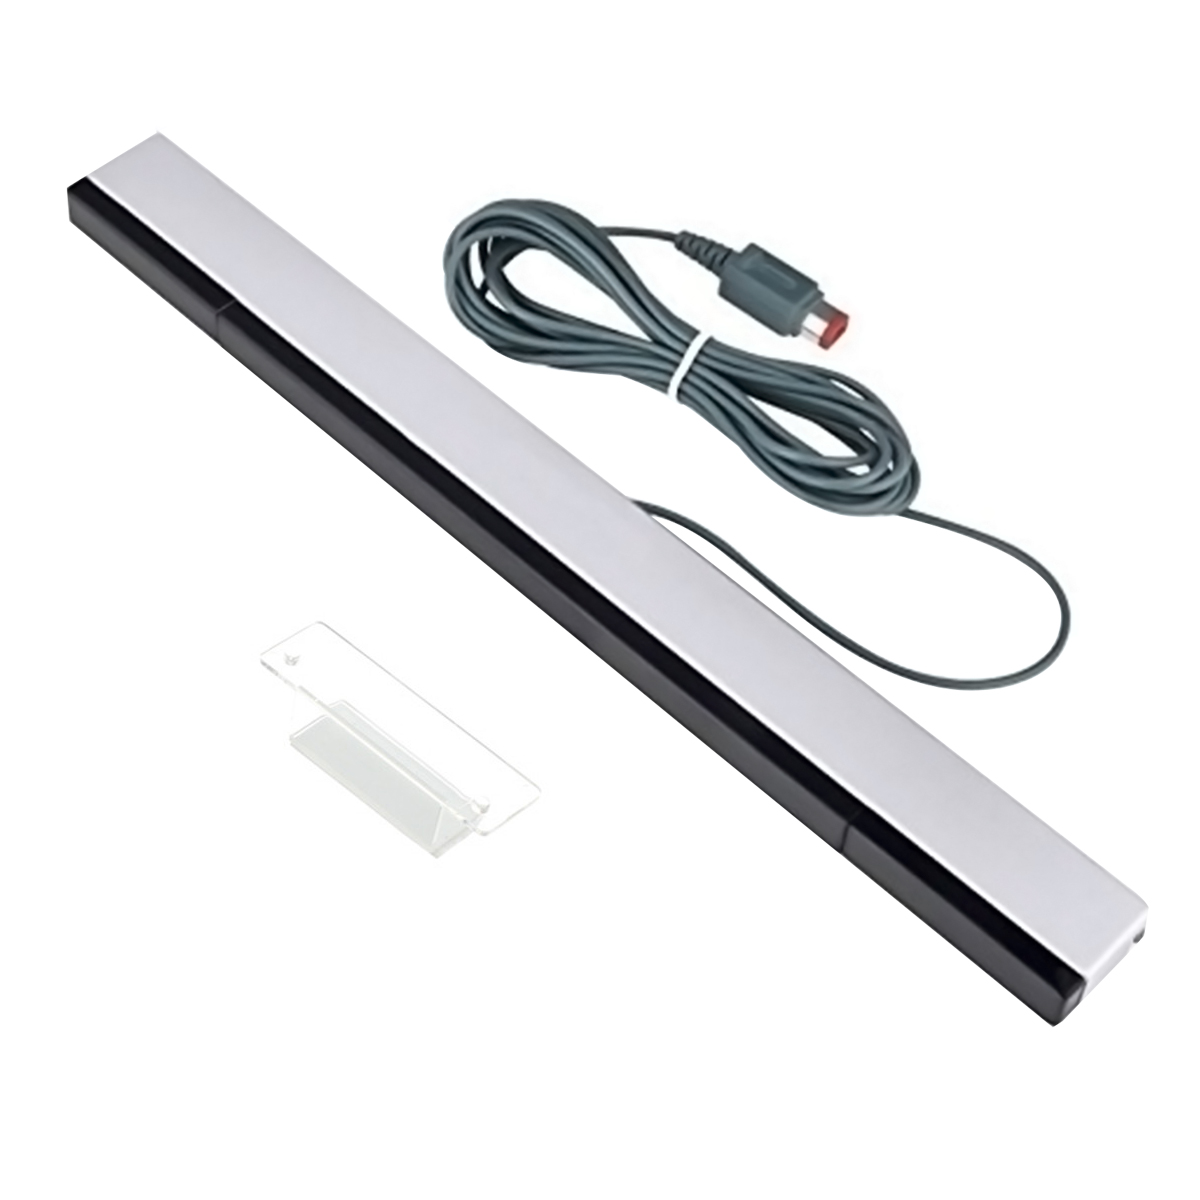 Wired Infrared Sensor Bar for Nintendo Wii and Wii U Console ( Silver / Black )